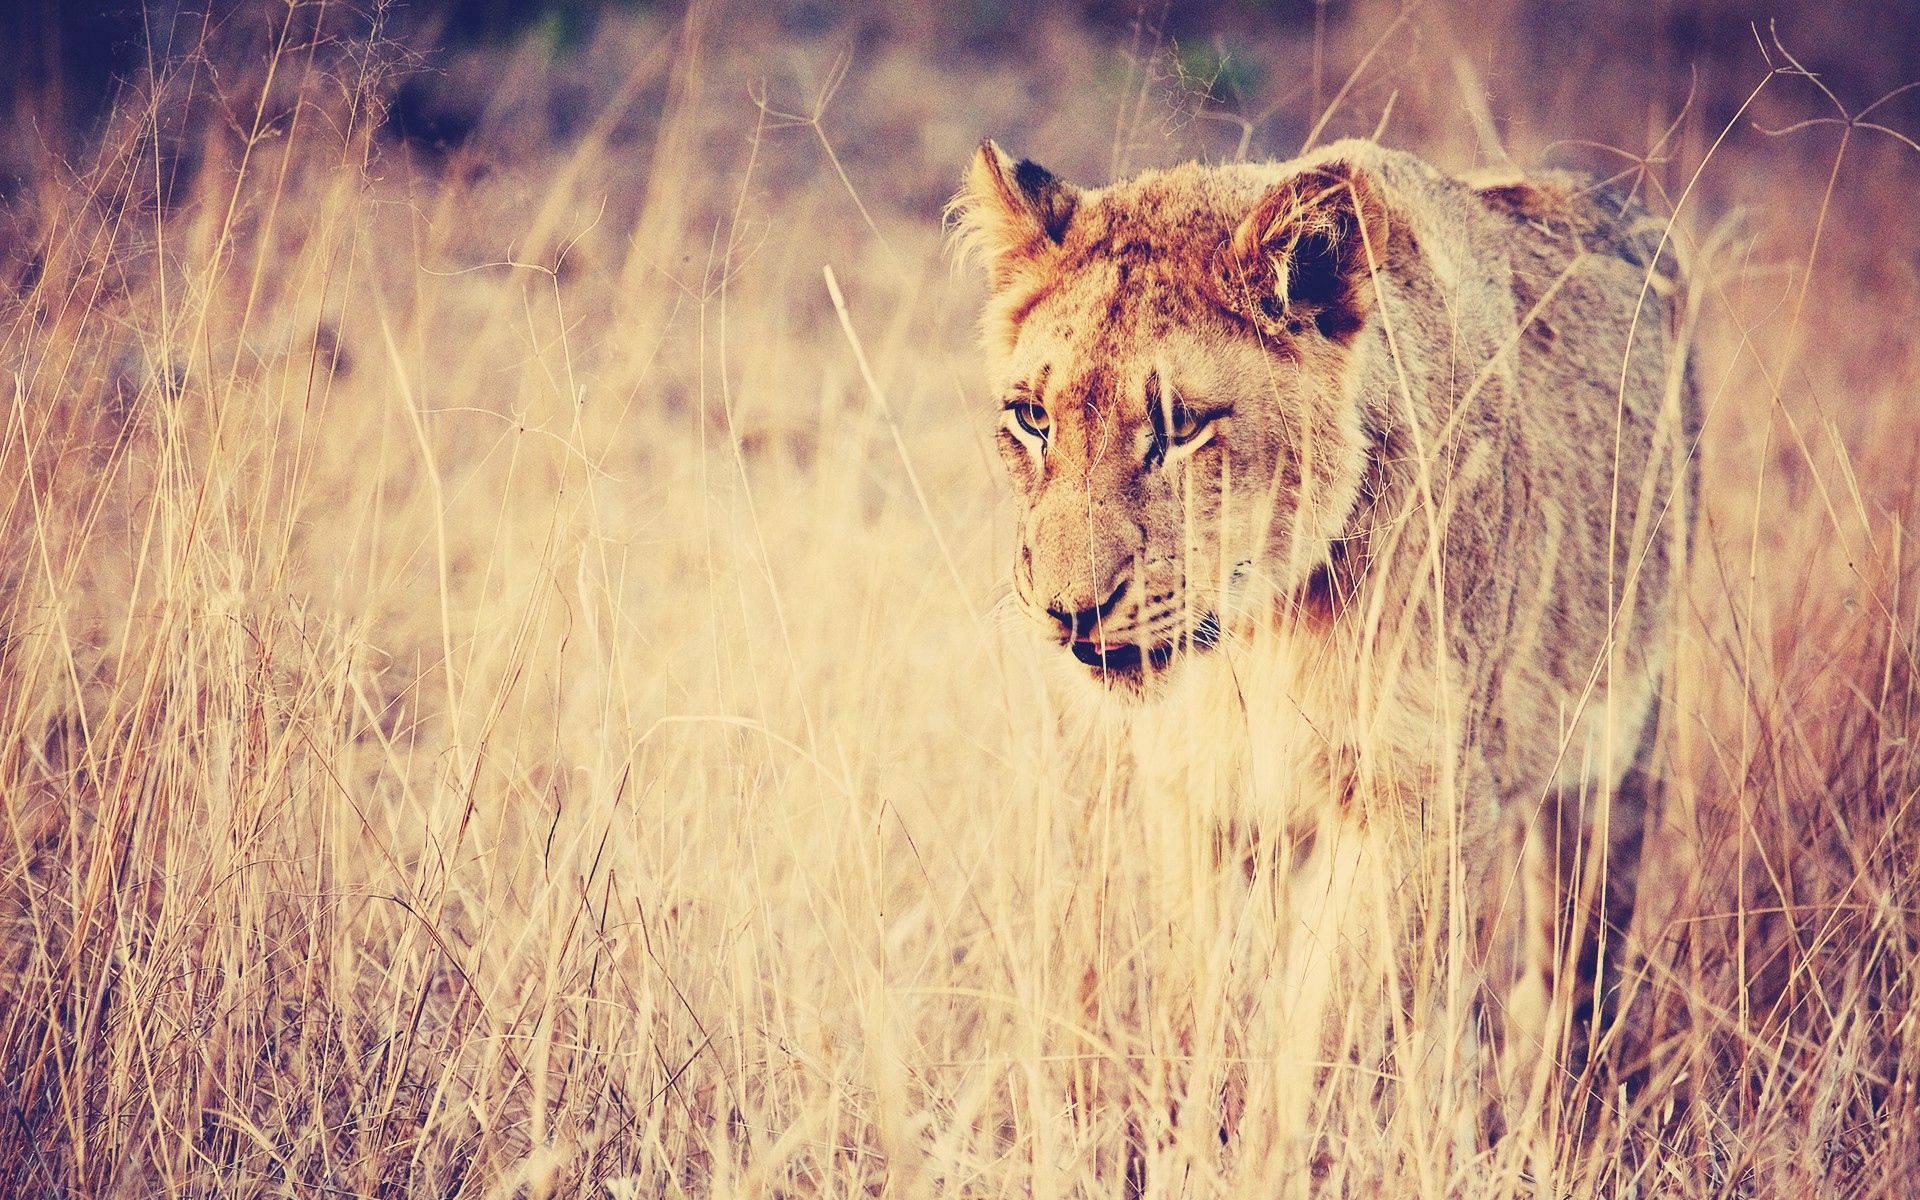 61524 download wallpaper Animals, Lion, Grass, Predator, Big Cat screensavers and pictures for free